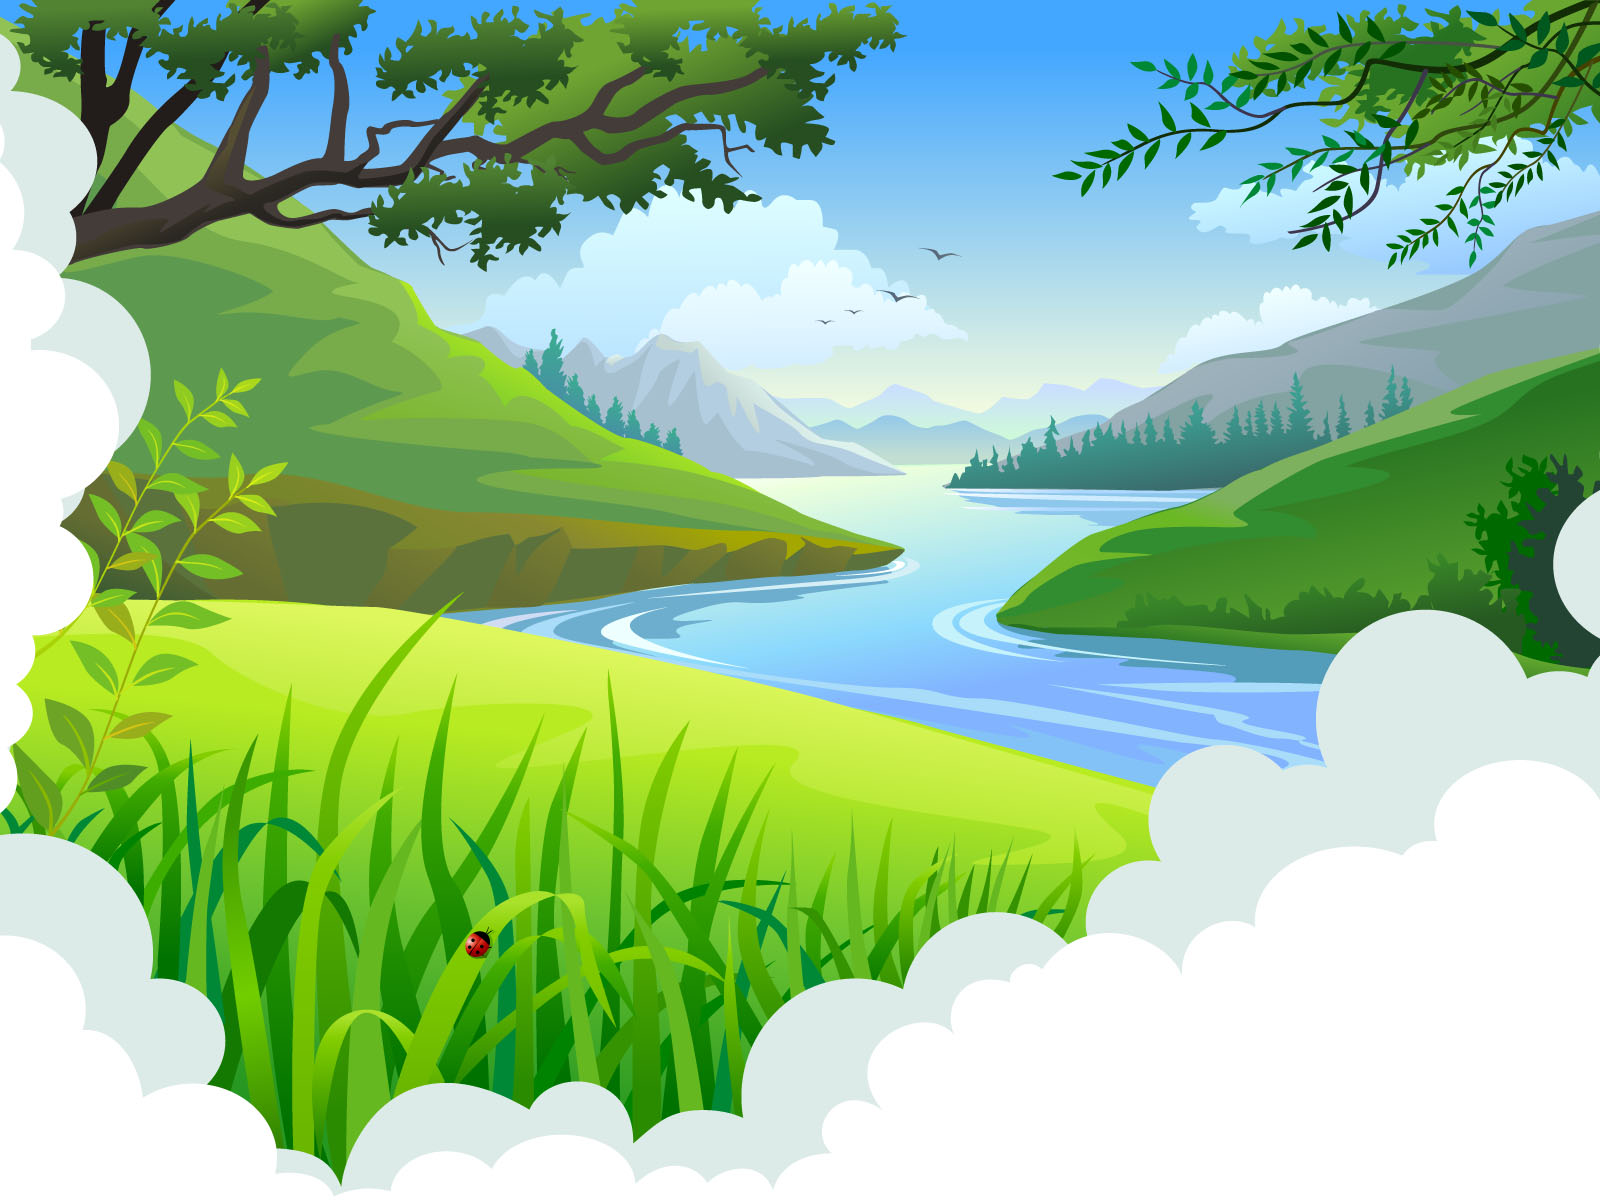 Cute Heart Wallpapers Download Cartoon Tropical Landscape Backgrounds Blue Design